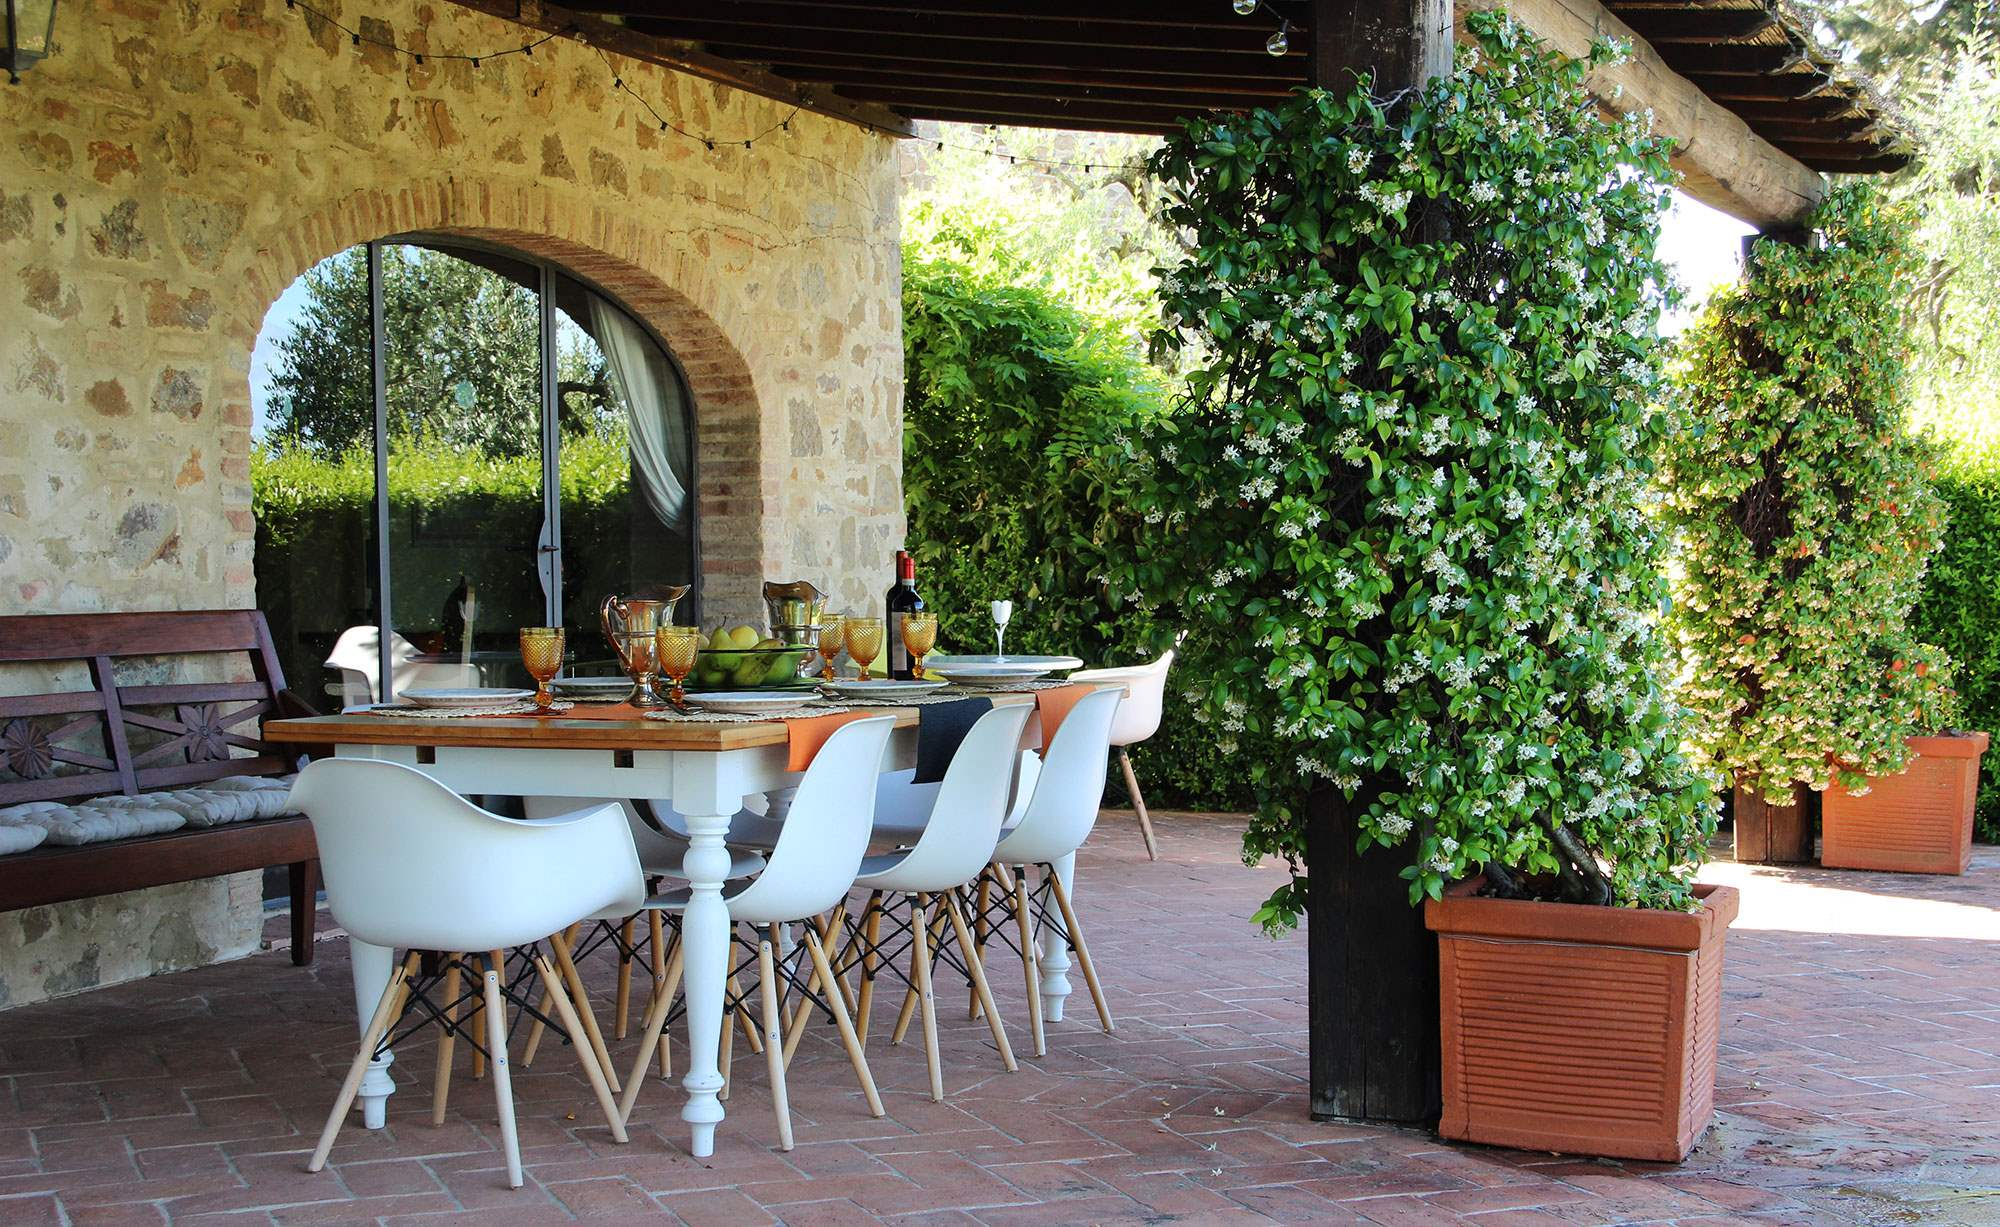 Villa Capanna, 3 bedroom villa in Chianti & Countryside, Tuscany Photo #13